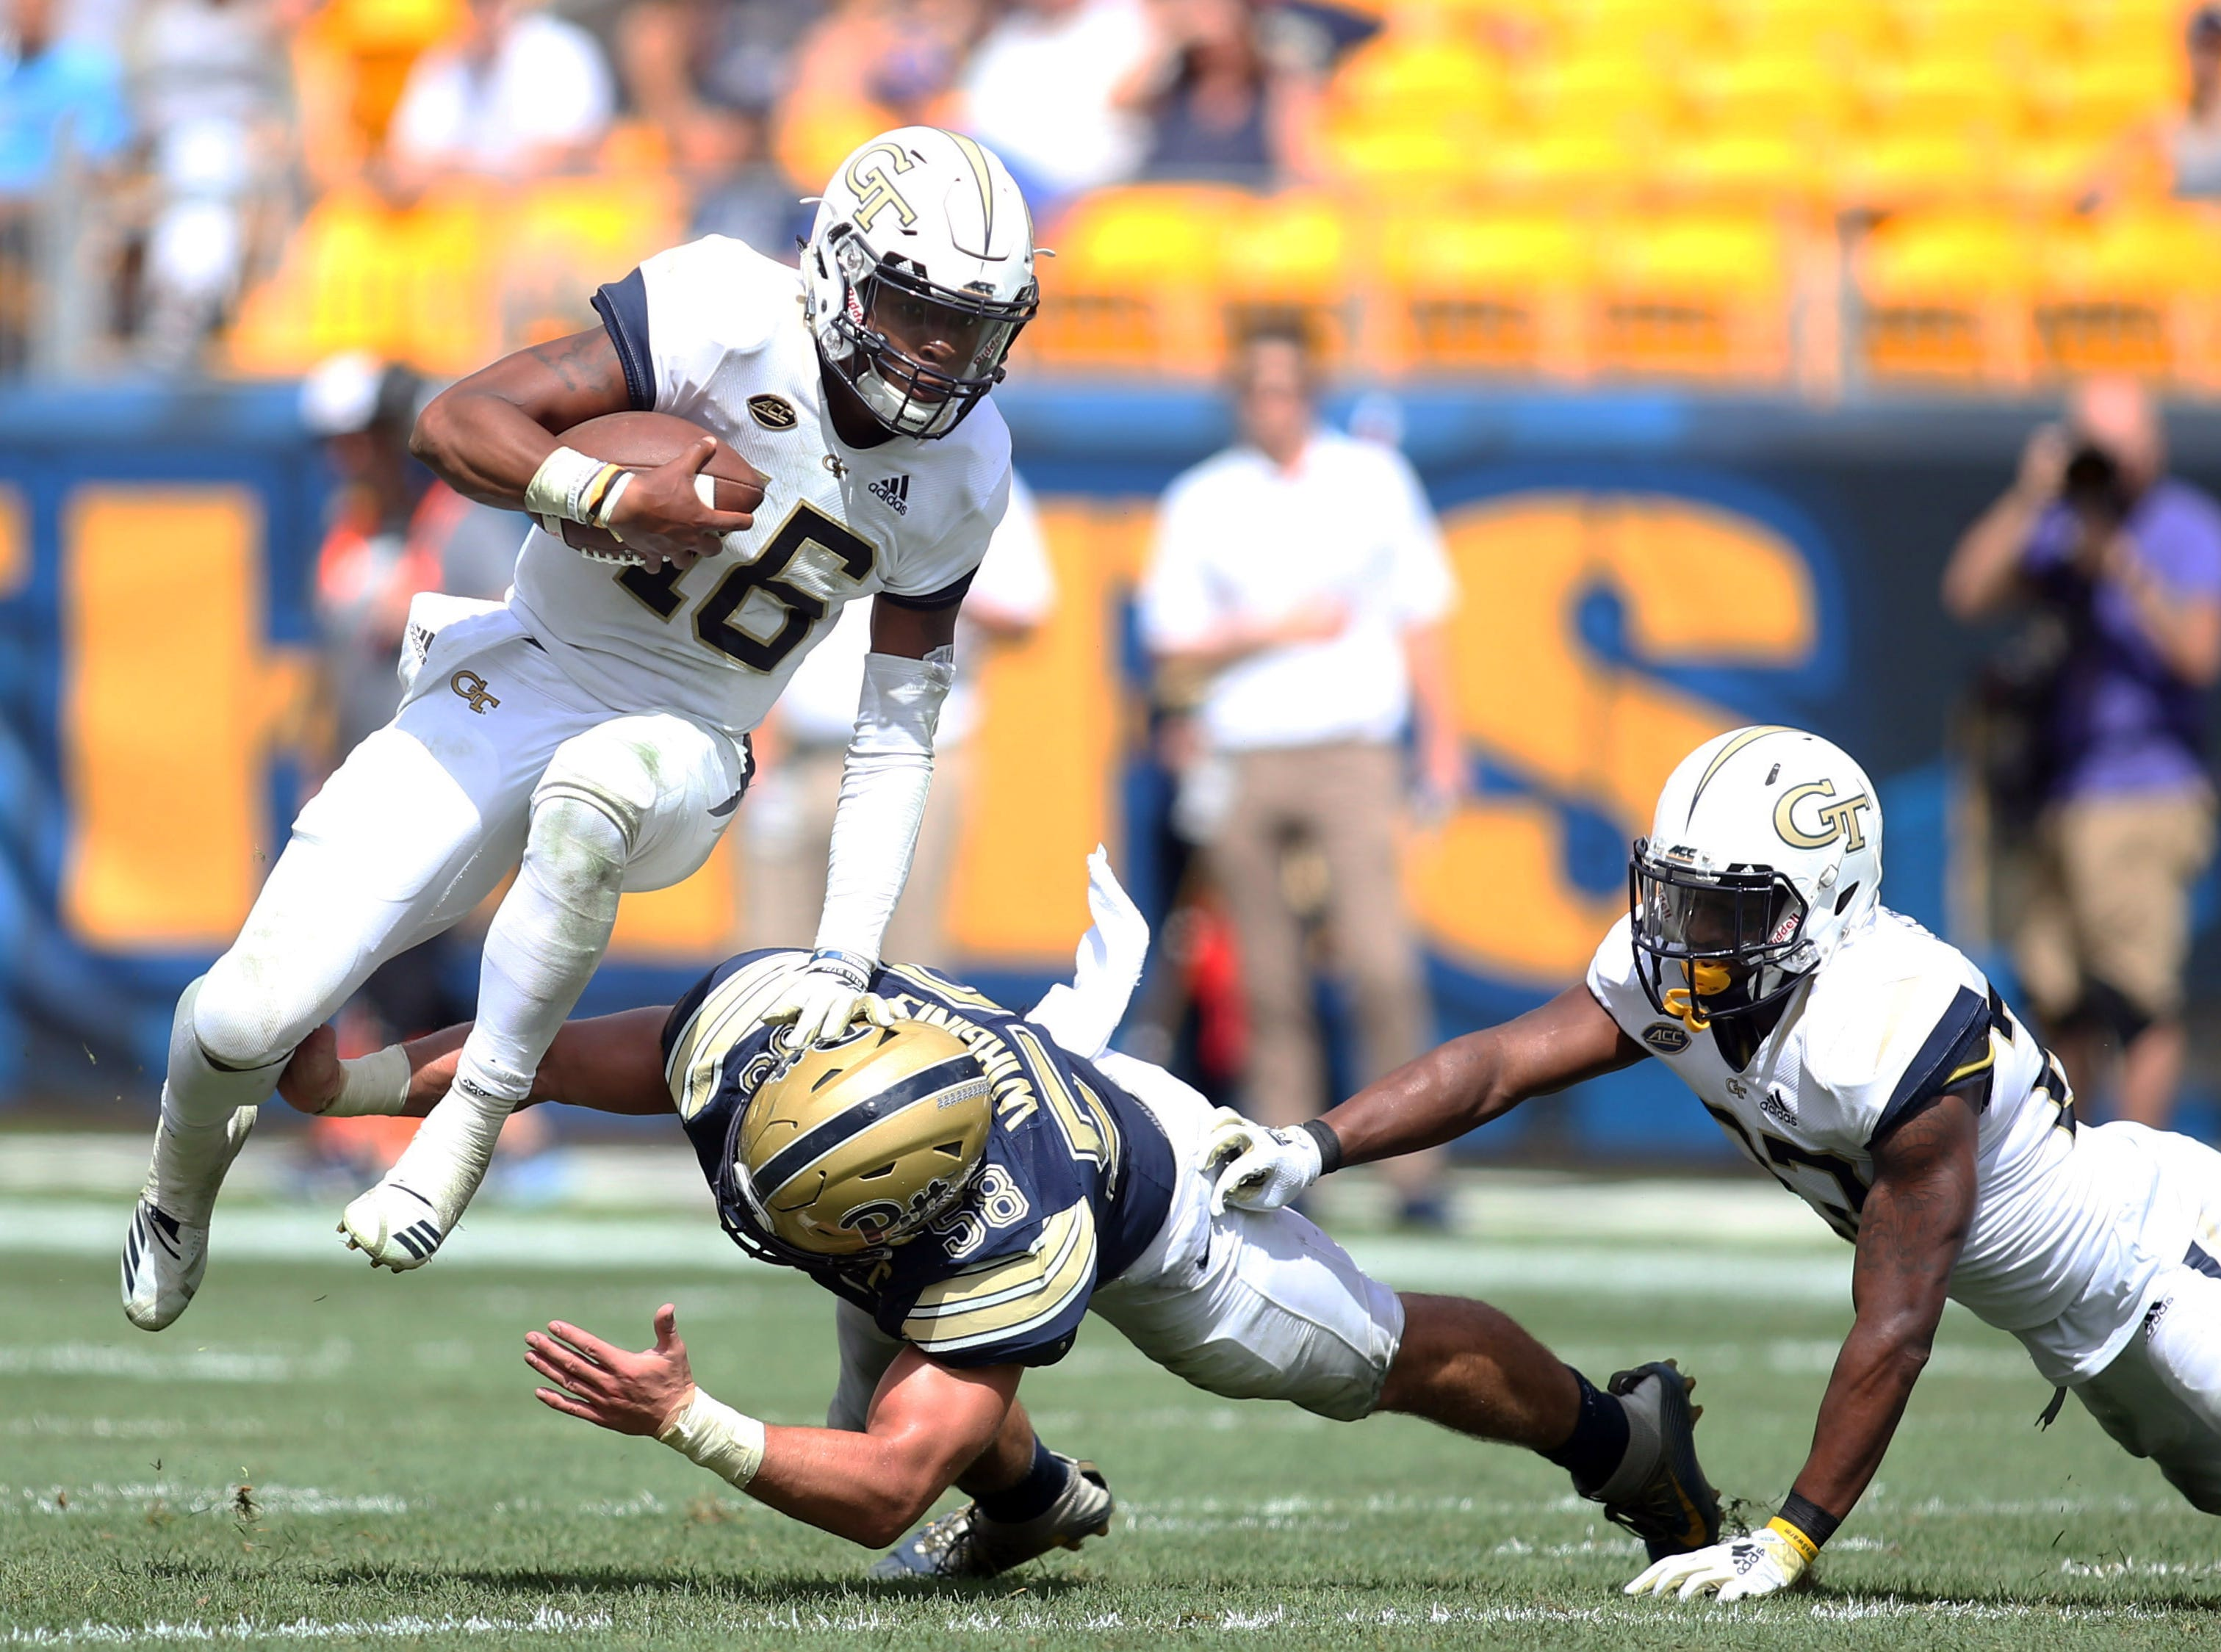 Georgia Tech Yellow Jackets quarterback TaQuon Marshall (16) runs the ball against Pittsburgh Panthers linebacker Quintin Wirginis (58) during the second quarter at Heinz Field.